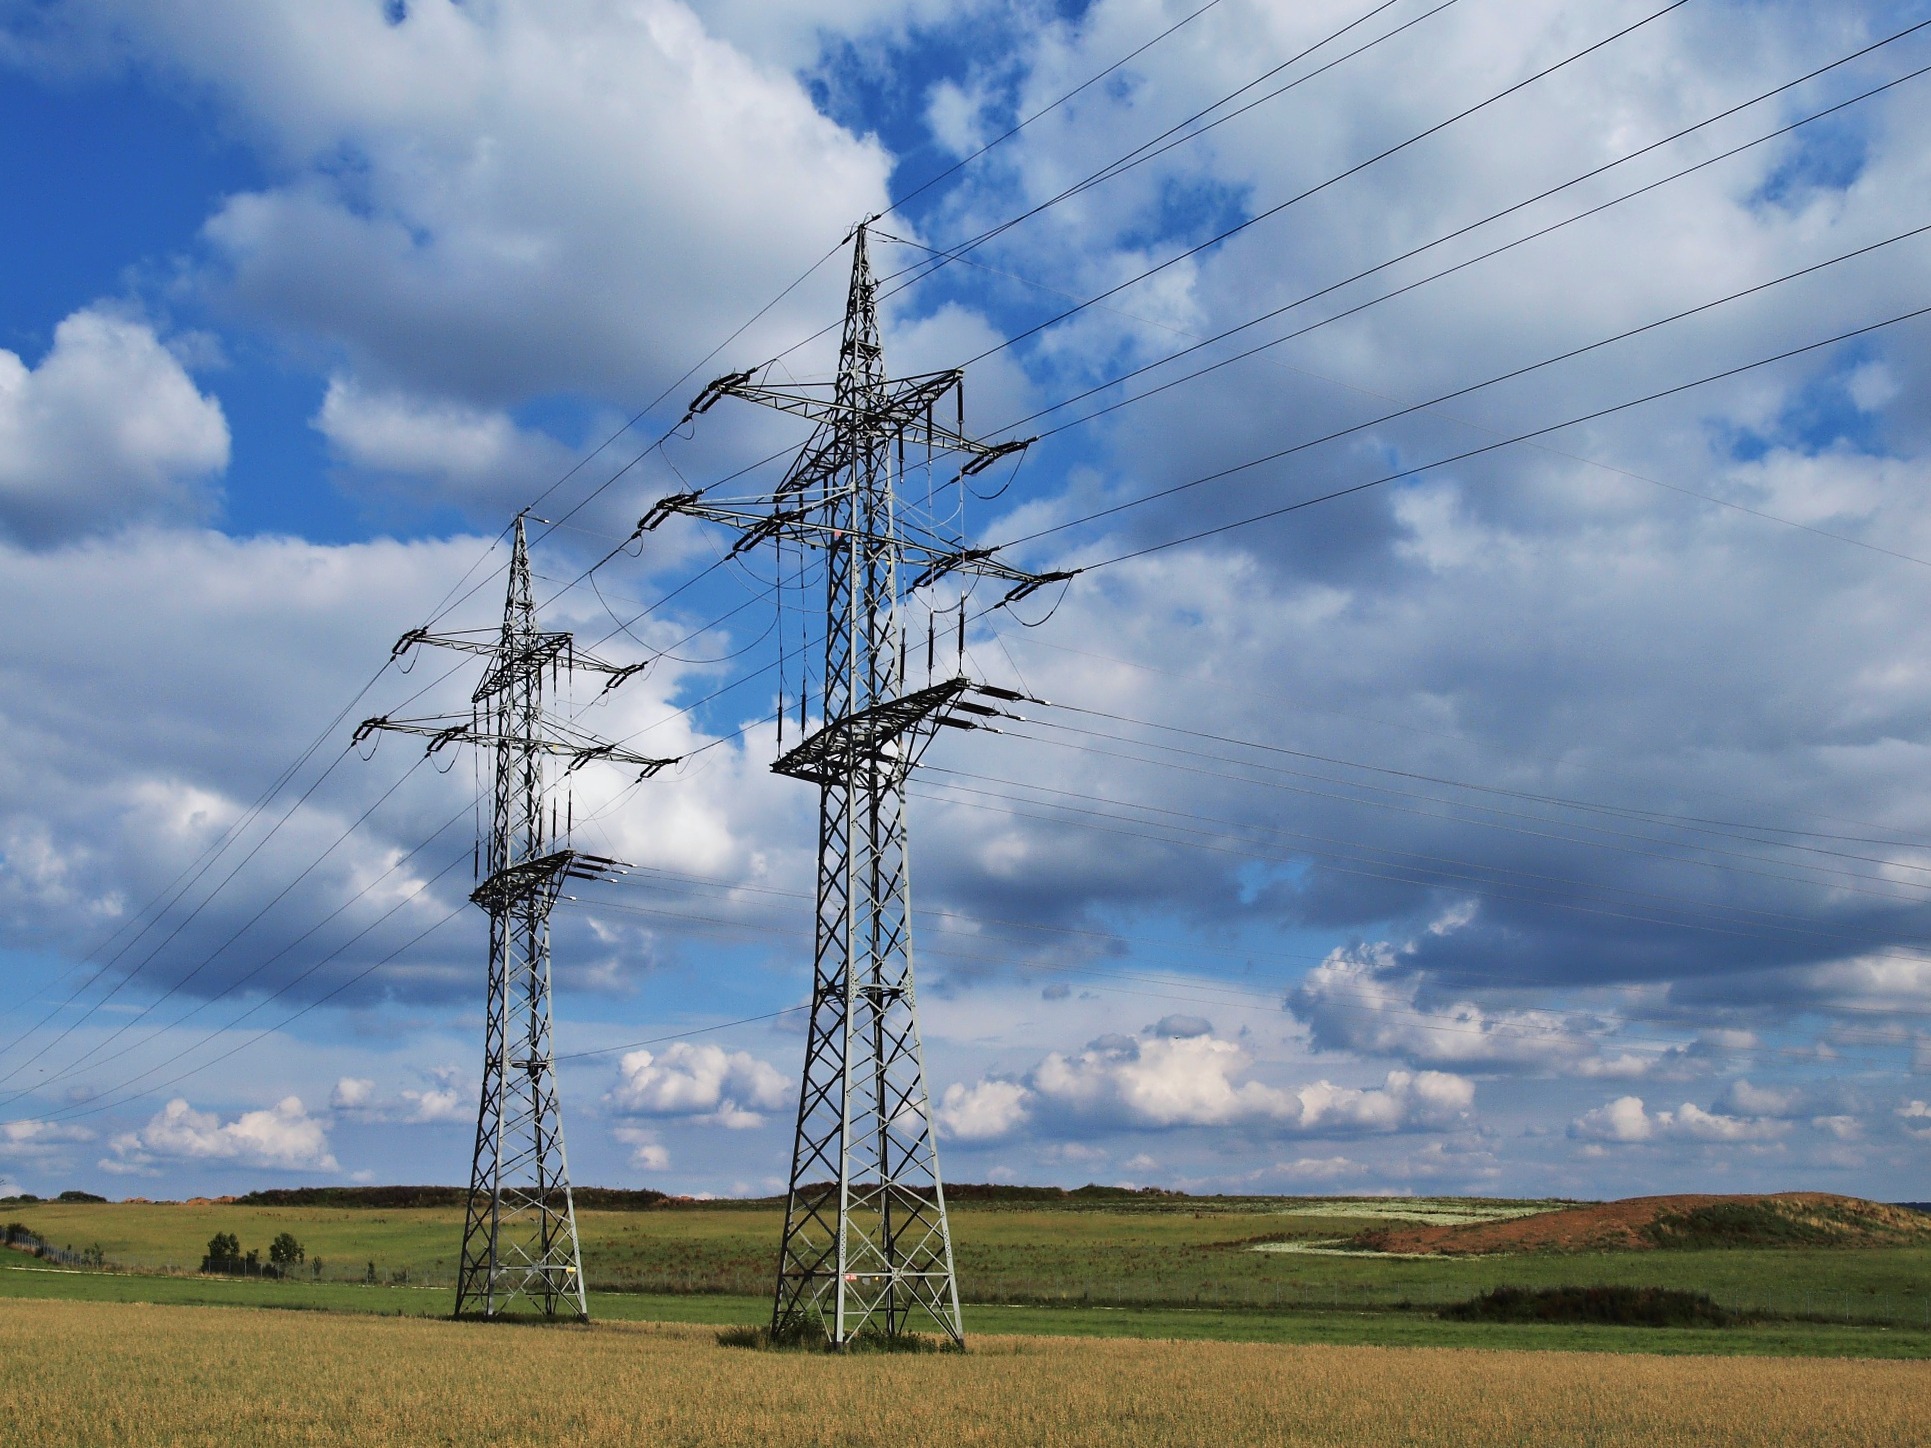 IMPROVEMENT OF POWER QUALITY IN ELECTRICAL SMART GRIDS